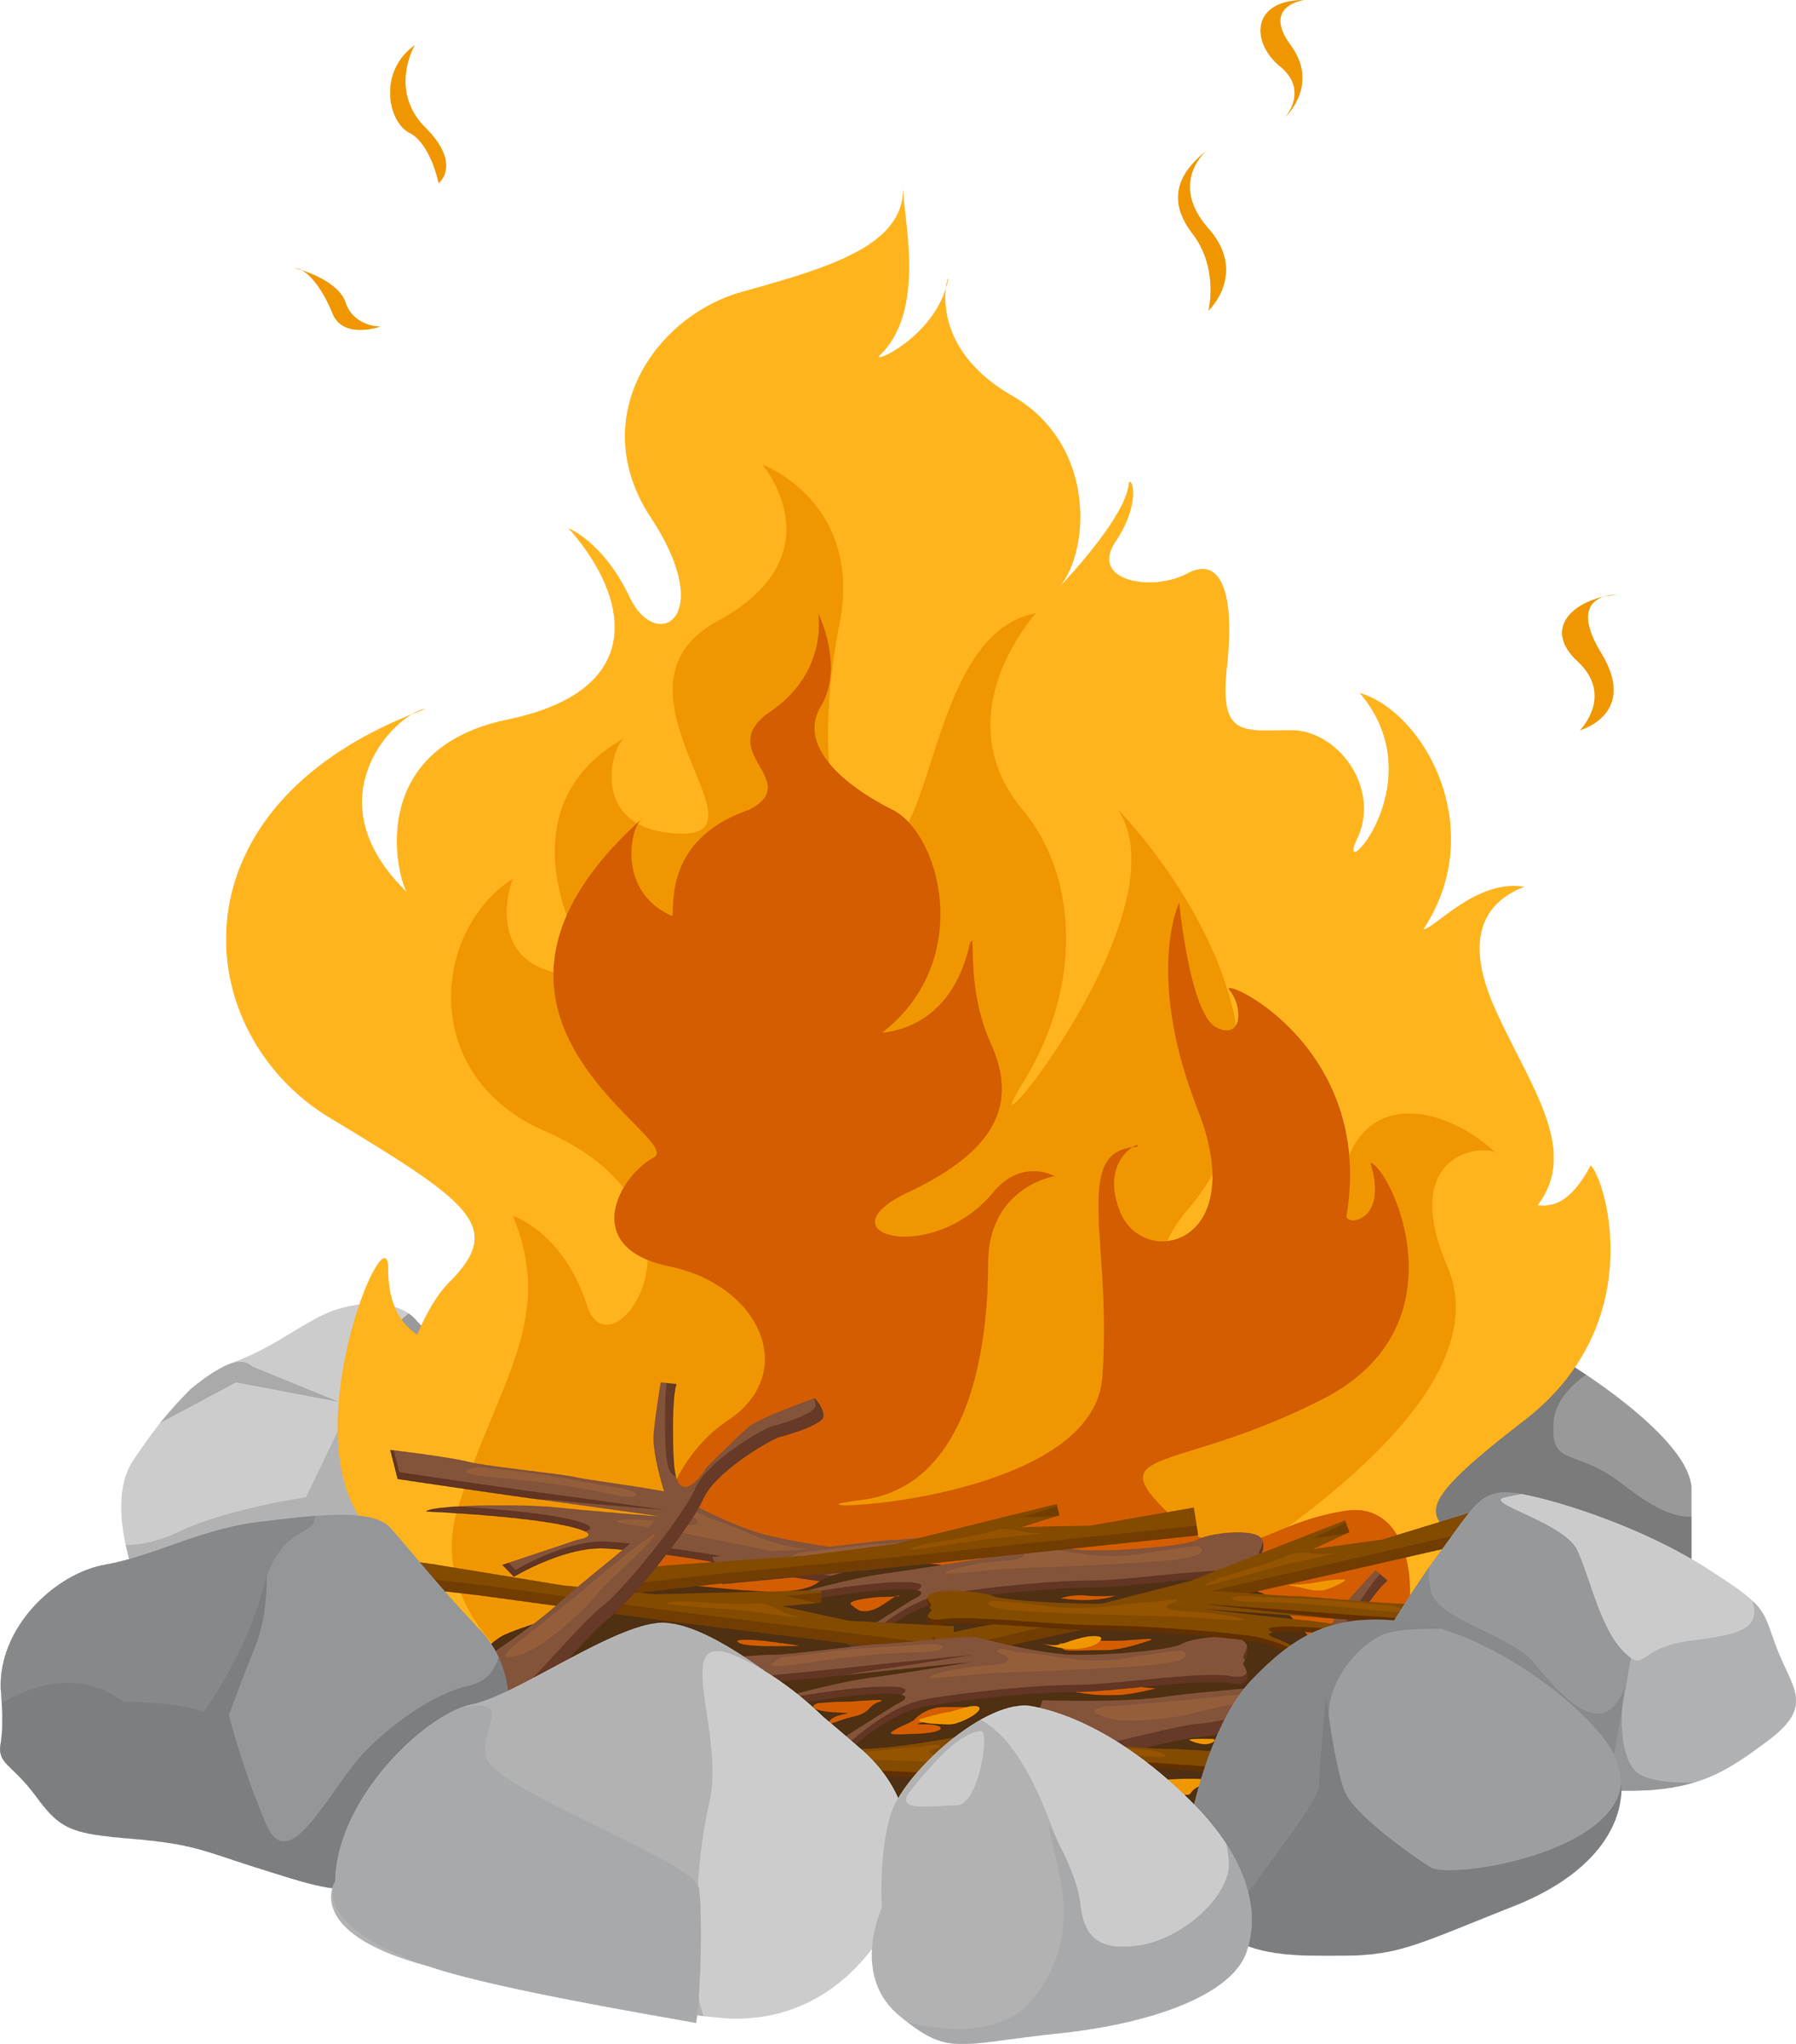 Campfire clipart clear background Pic Mart PNG Campfire Pic